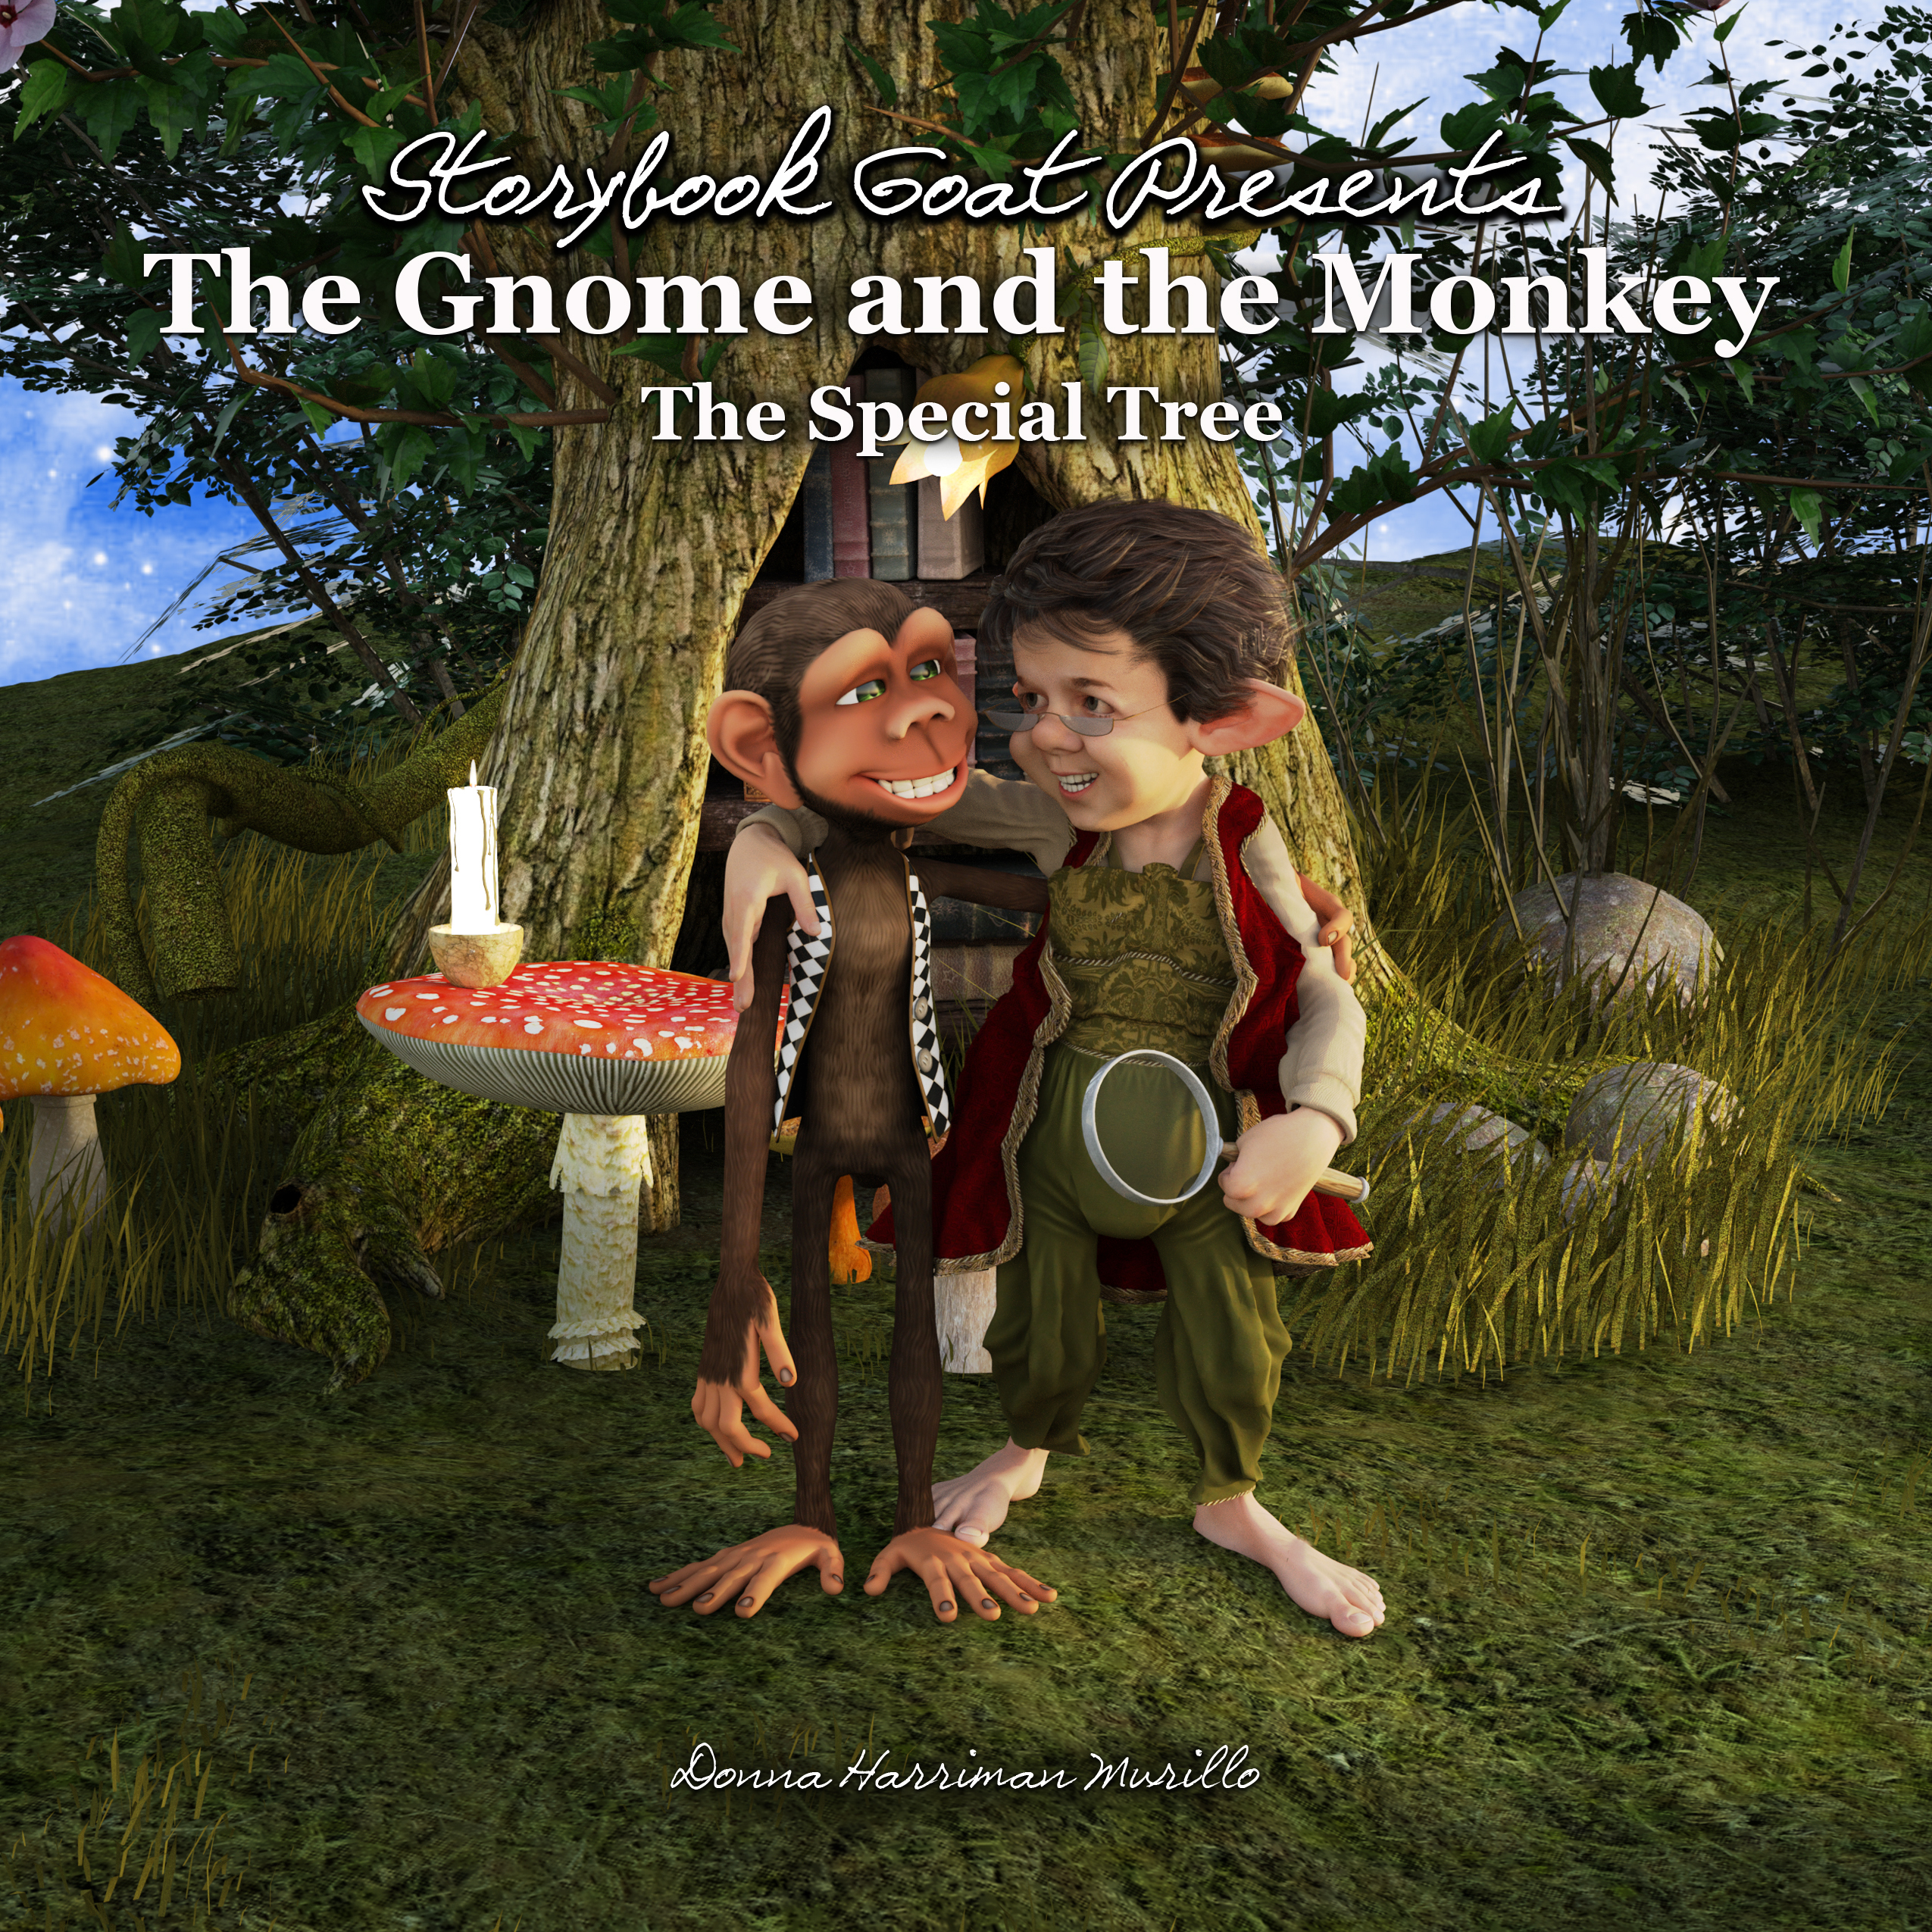 The Gnome and the Monkey: The Special Tree Donna Harriman Murillo